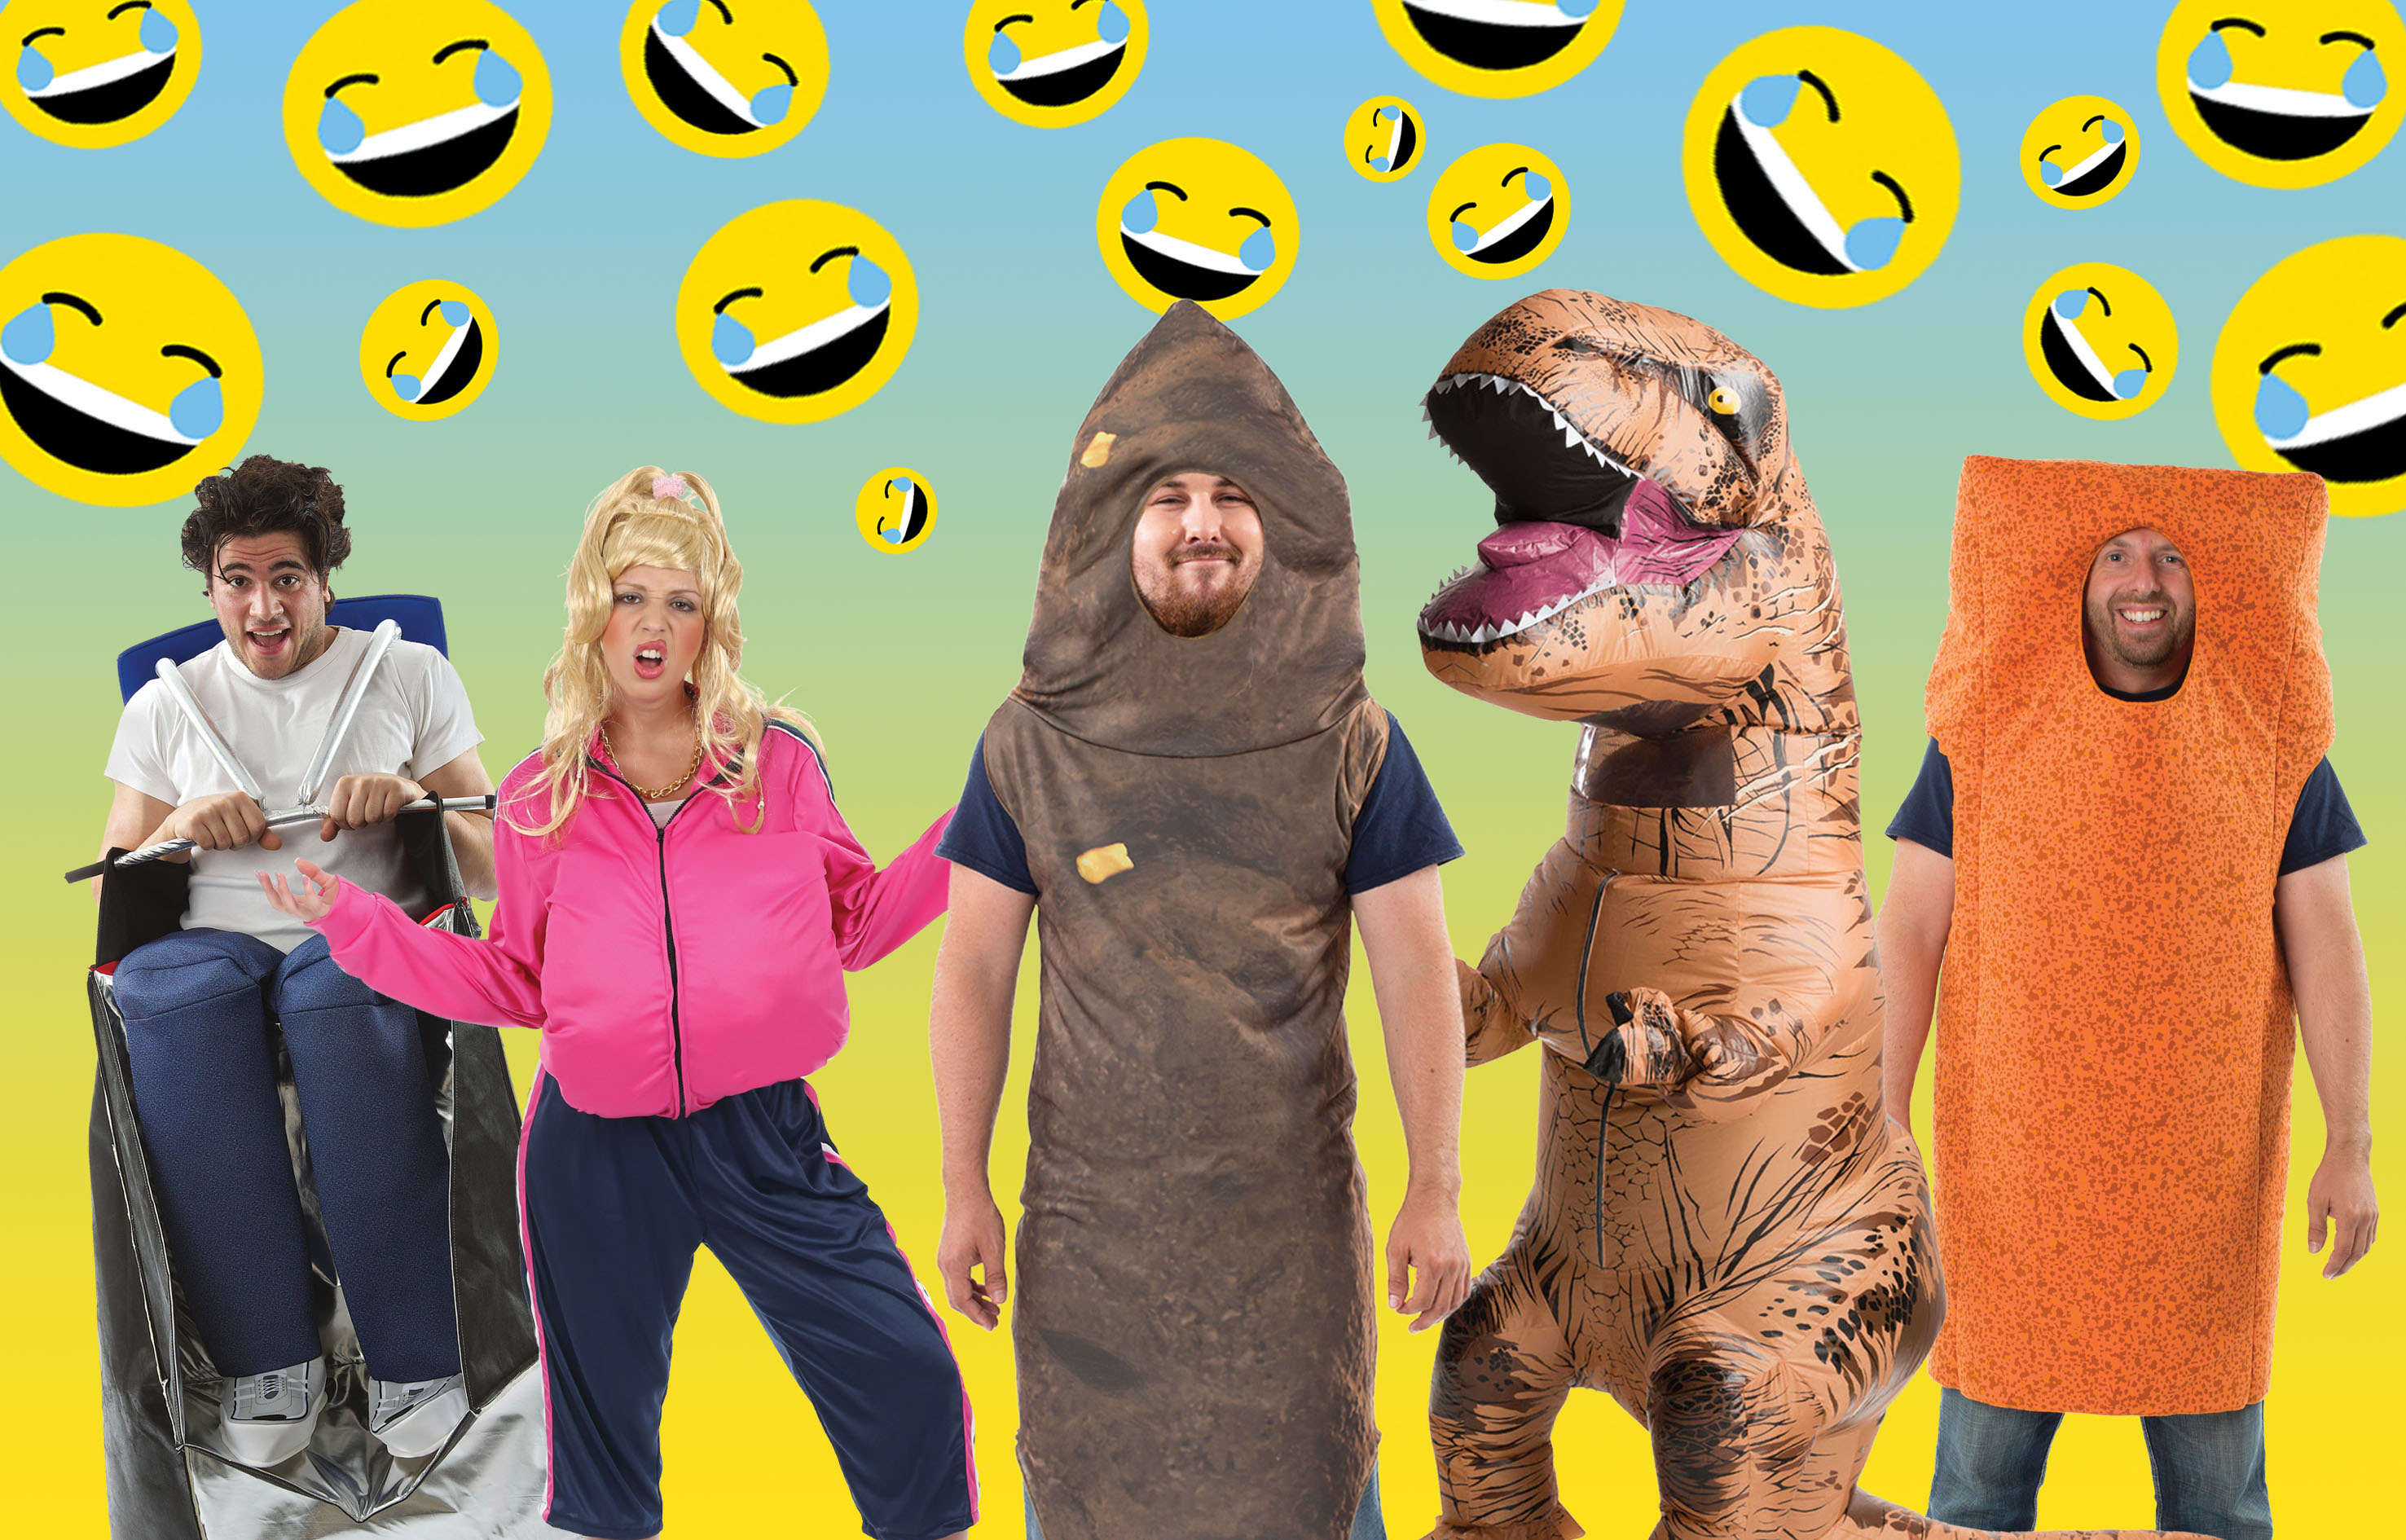 A group of people wearing various funny fancy dress costumes.